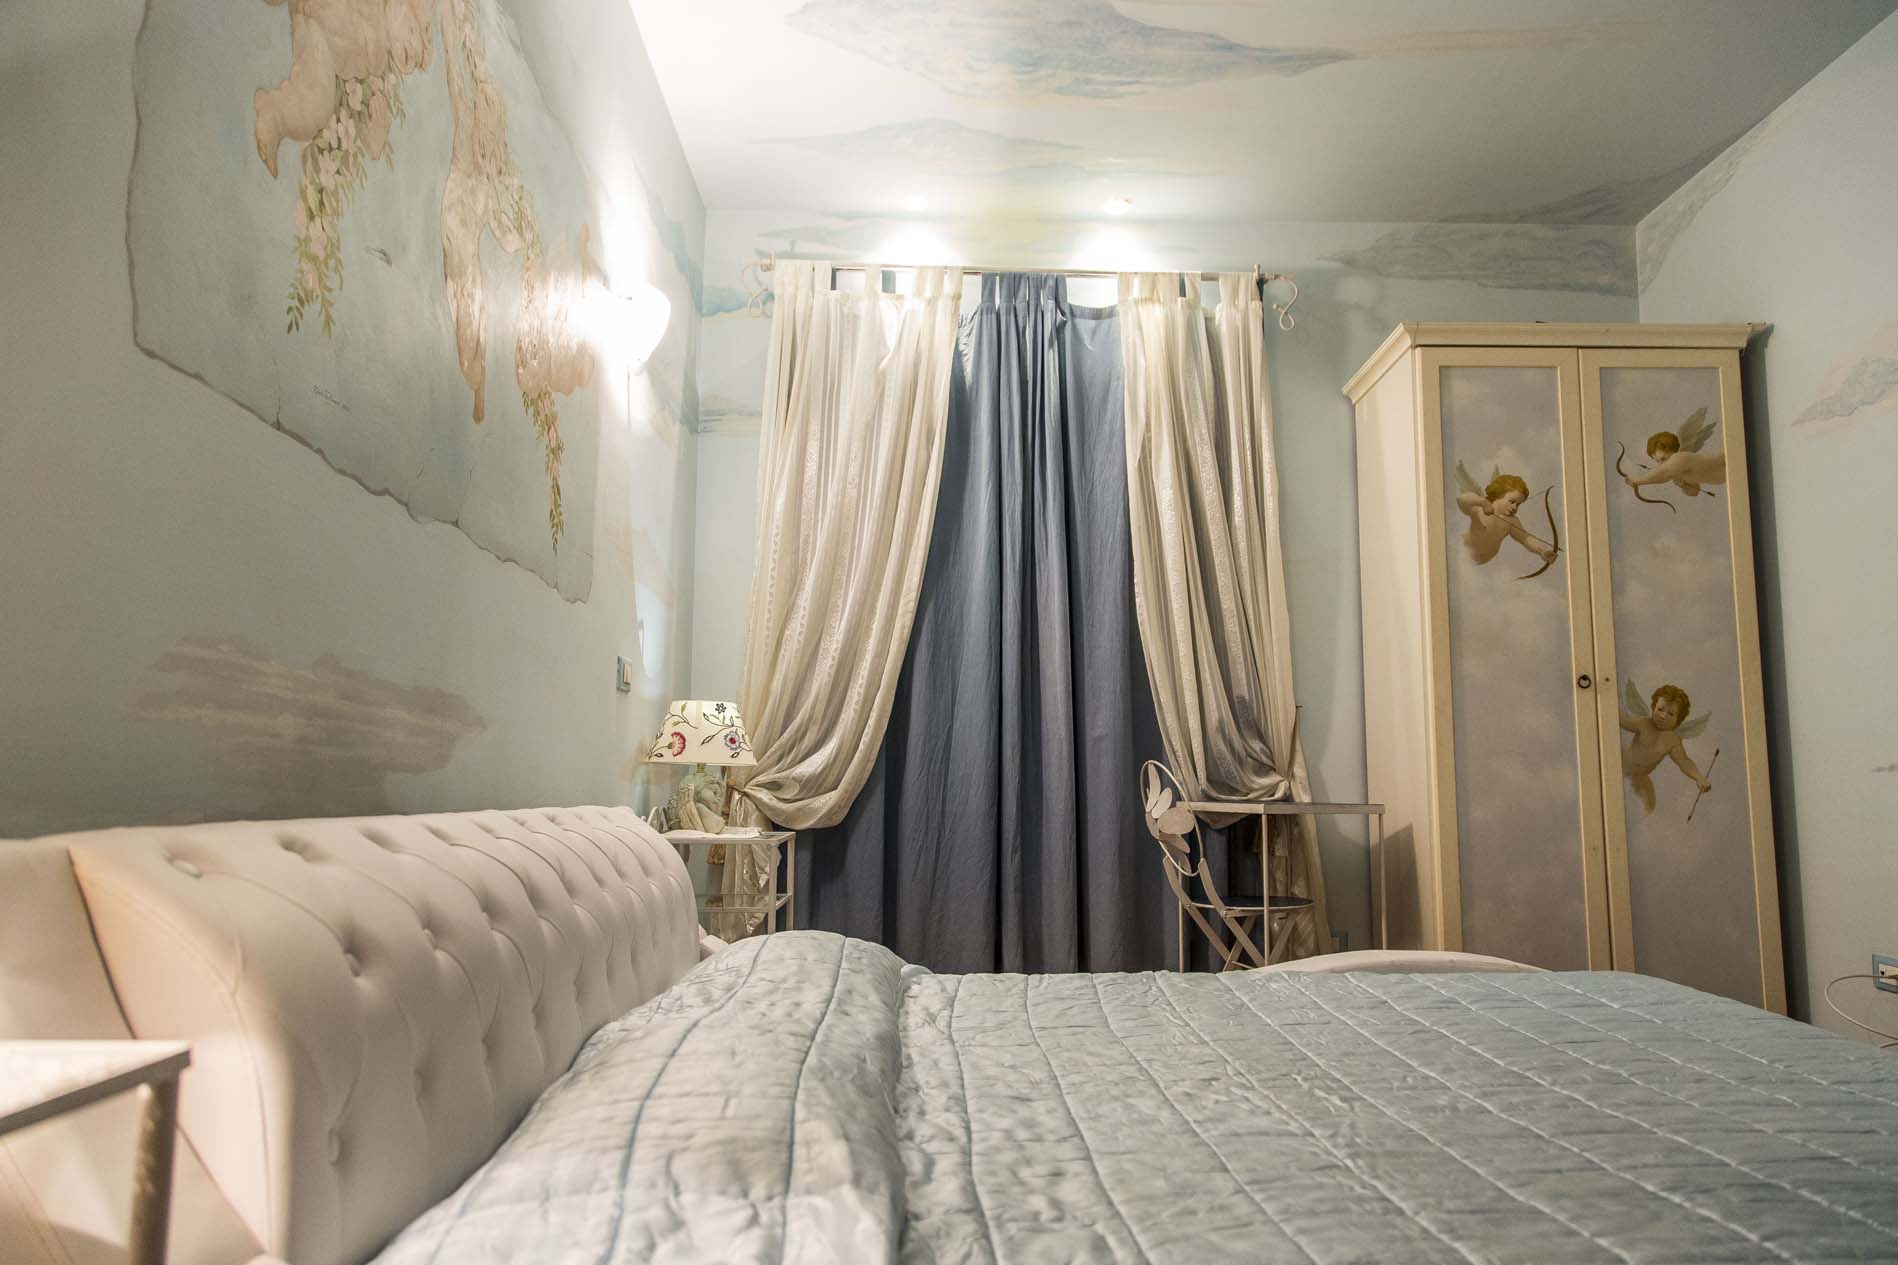 paradiso- Bed & Breakfast a Tivoli